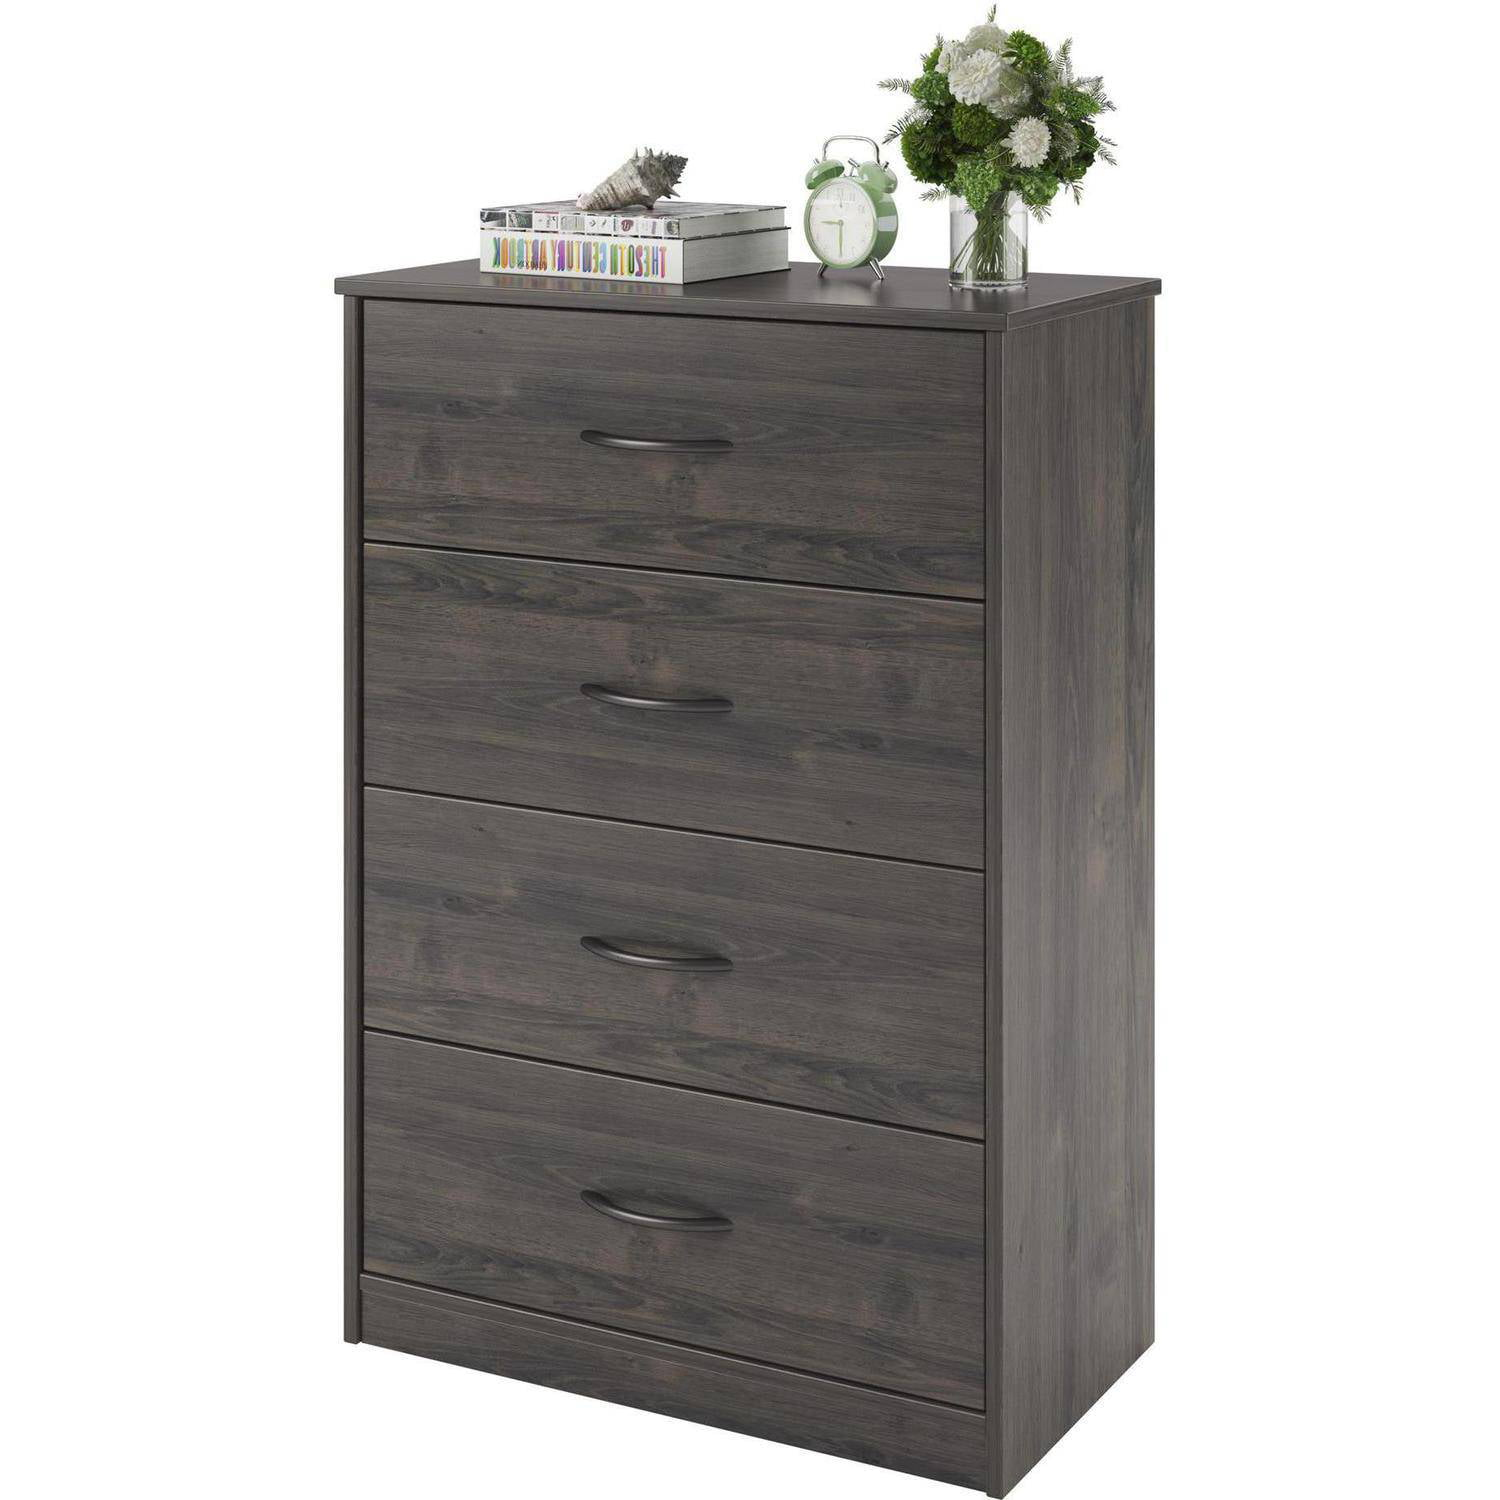 modern wood dresser bedroom storage dresser chest 4 drawer modern wood 12649